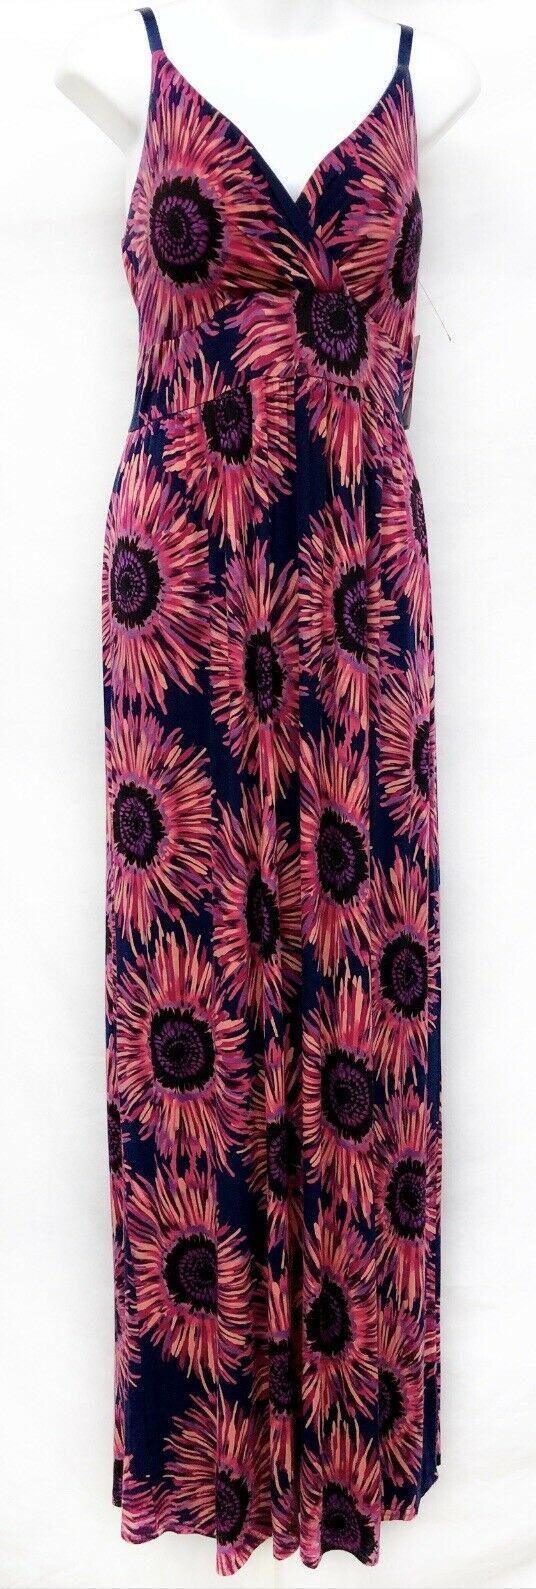 NWT ($50) ND Maxi Dress Size L Sunflower Coral Festival Empire Waist Sleeveless